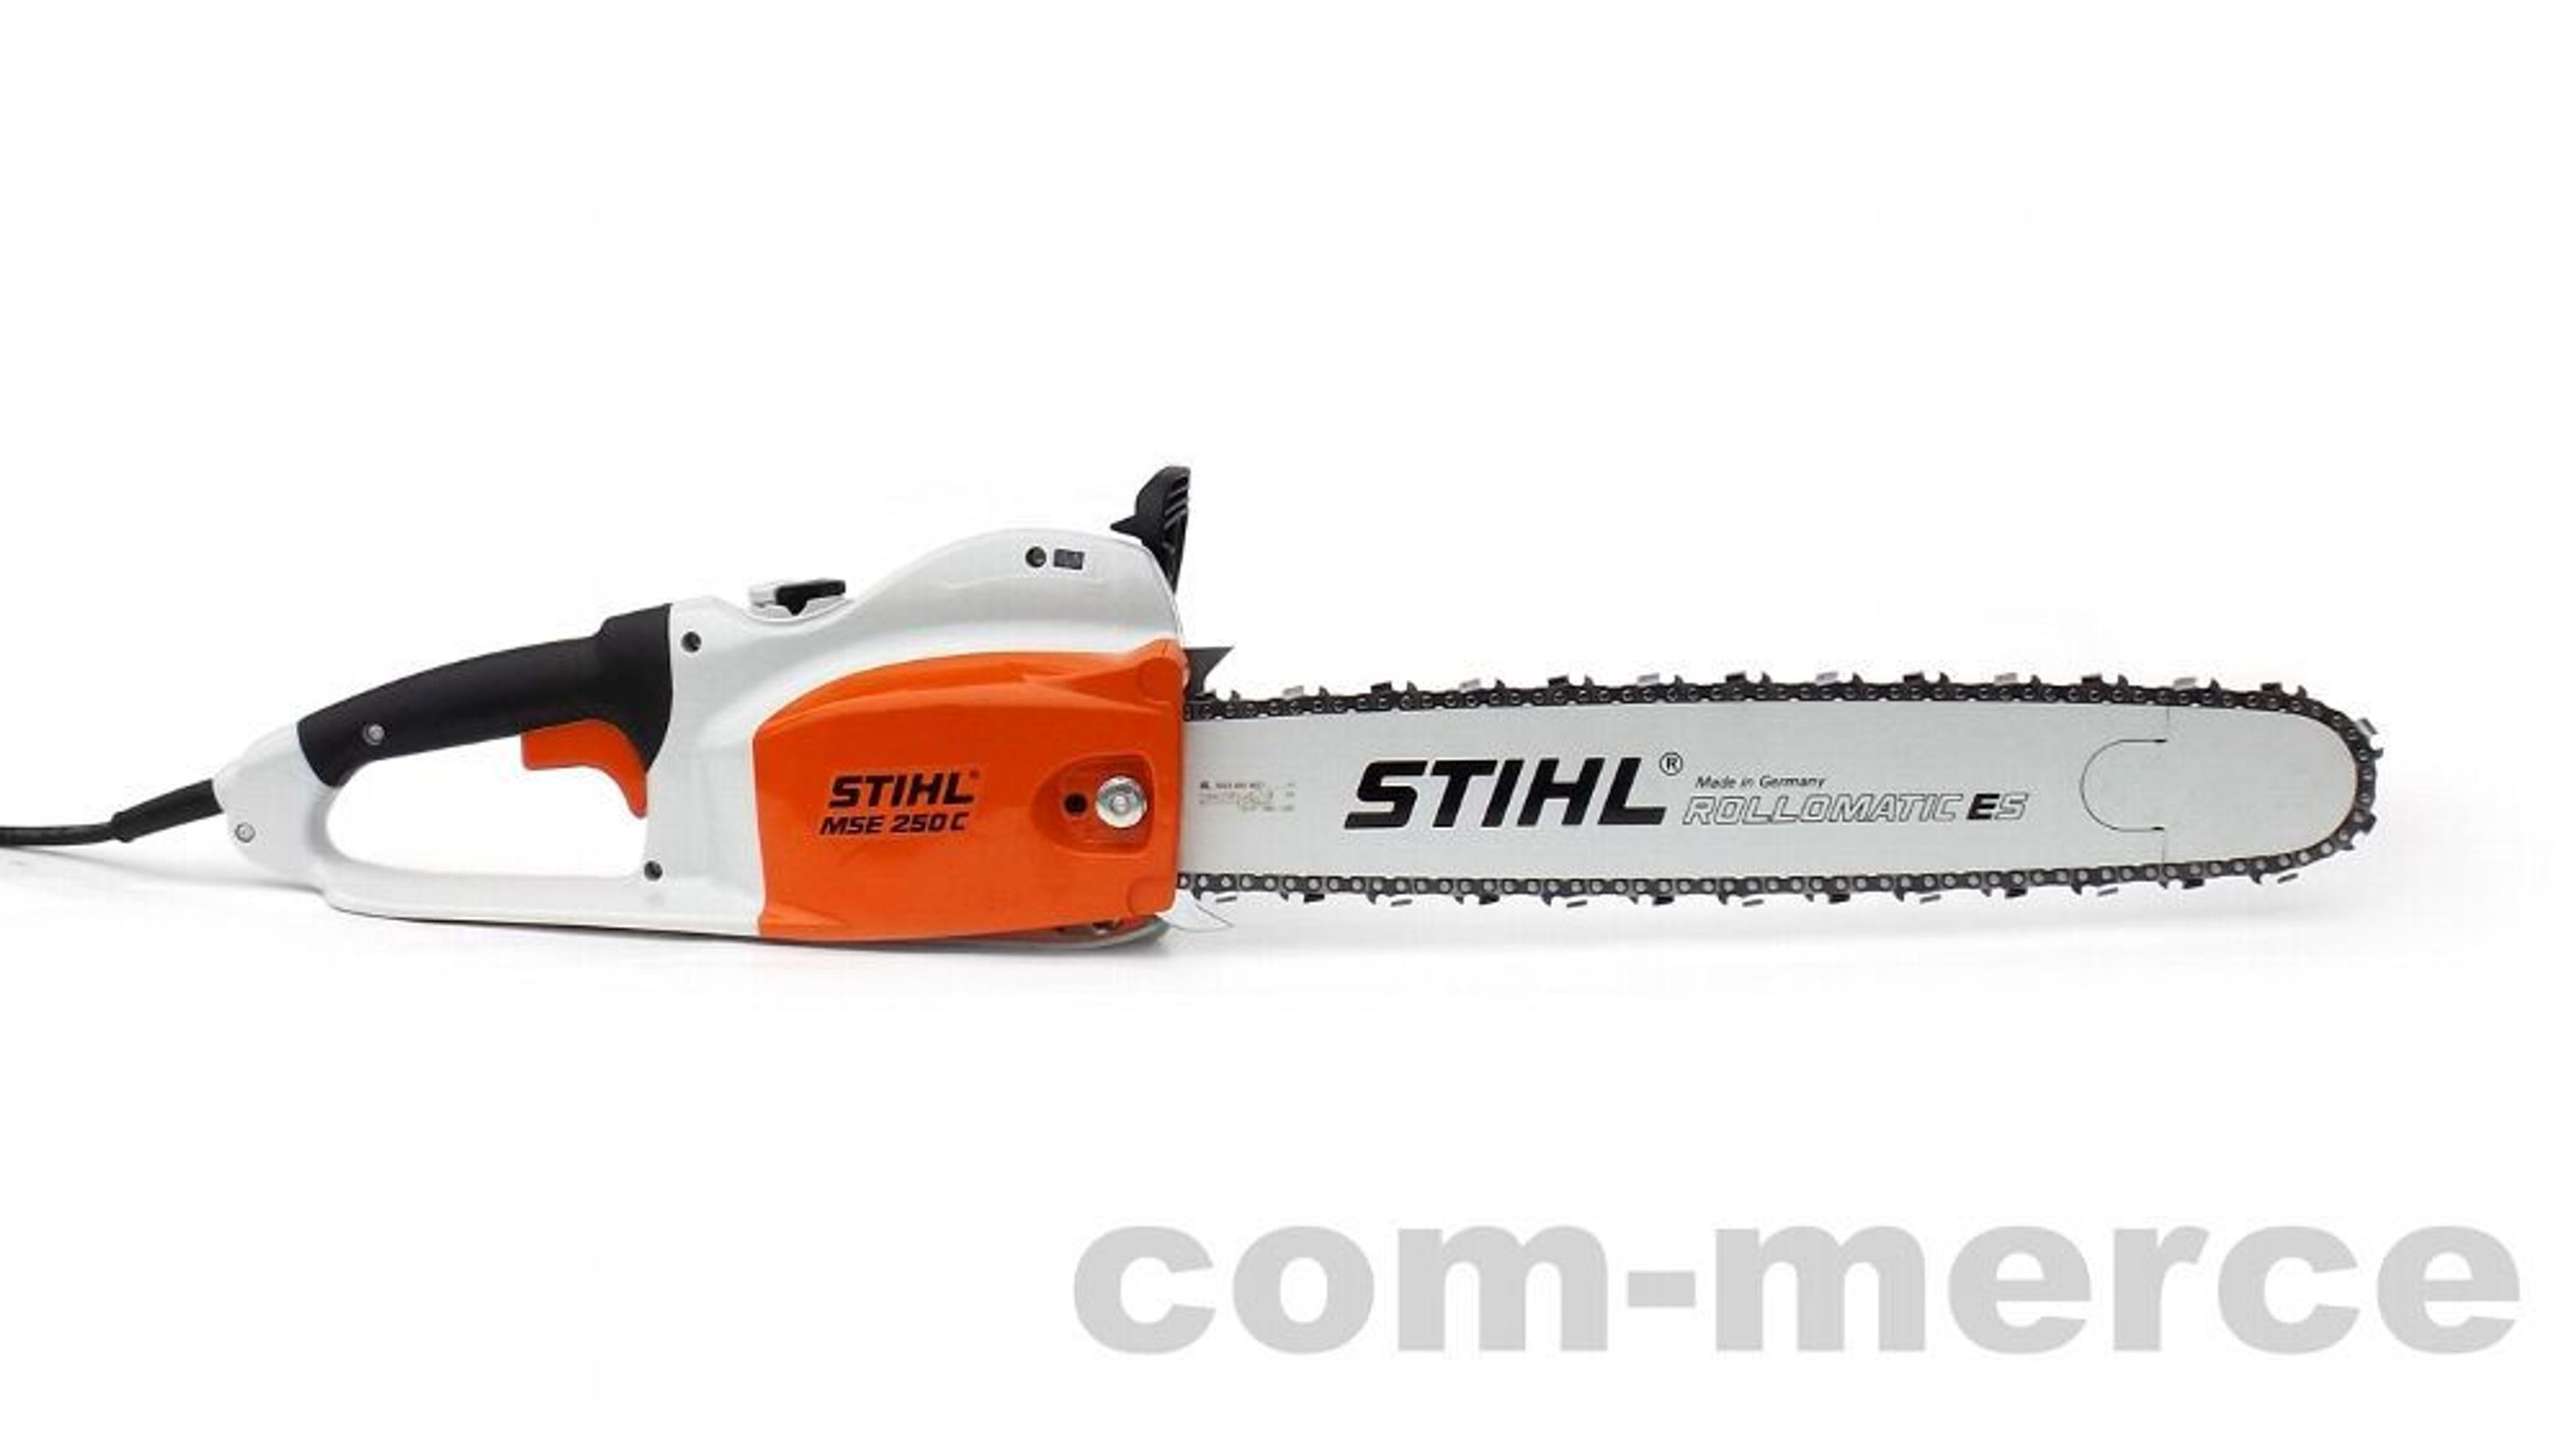 stihl kettens ge mse 250 c q pro elektros ge elektro motors ge 40 45 cm kaufen bei. Black Bedroom Furniture Sets. Home Design Ideas